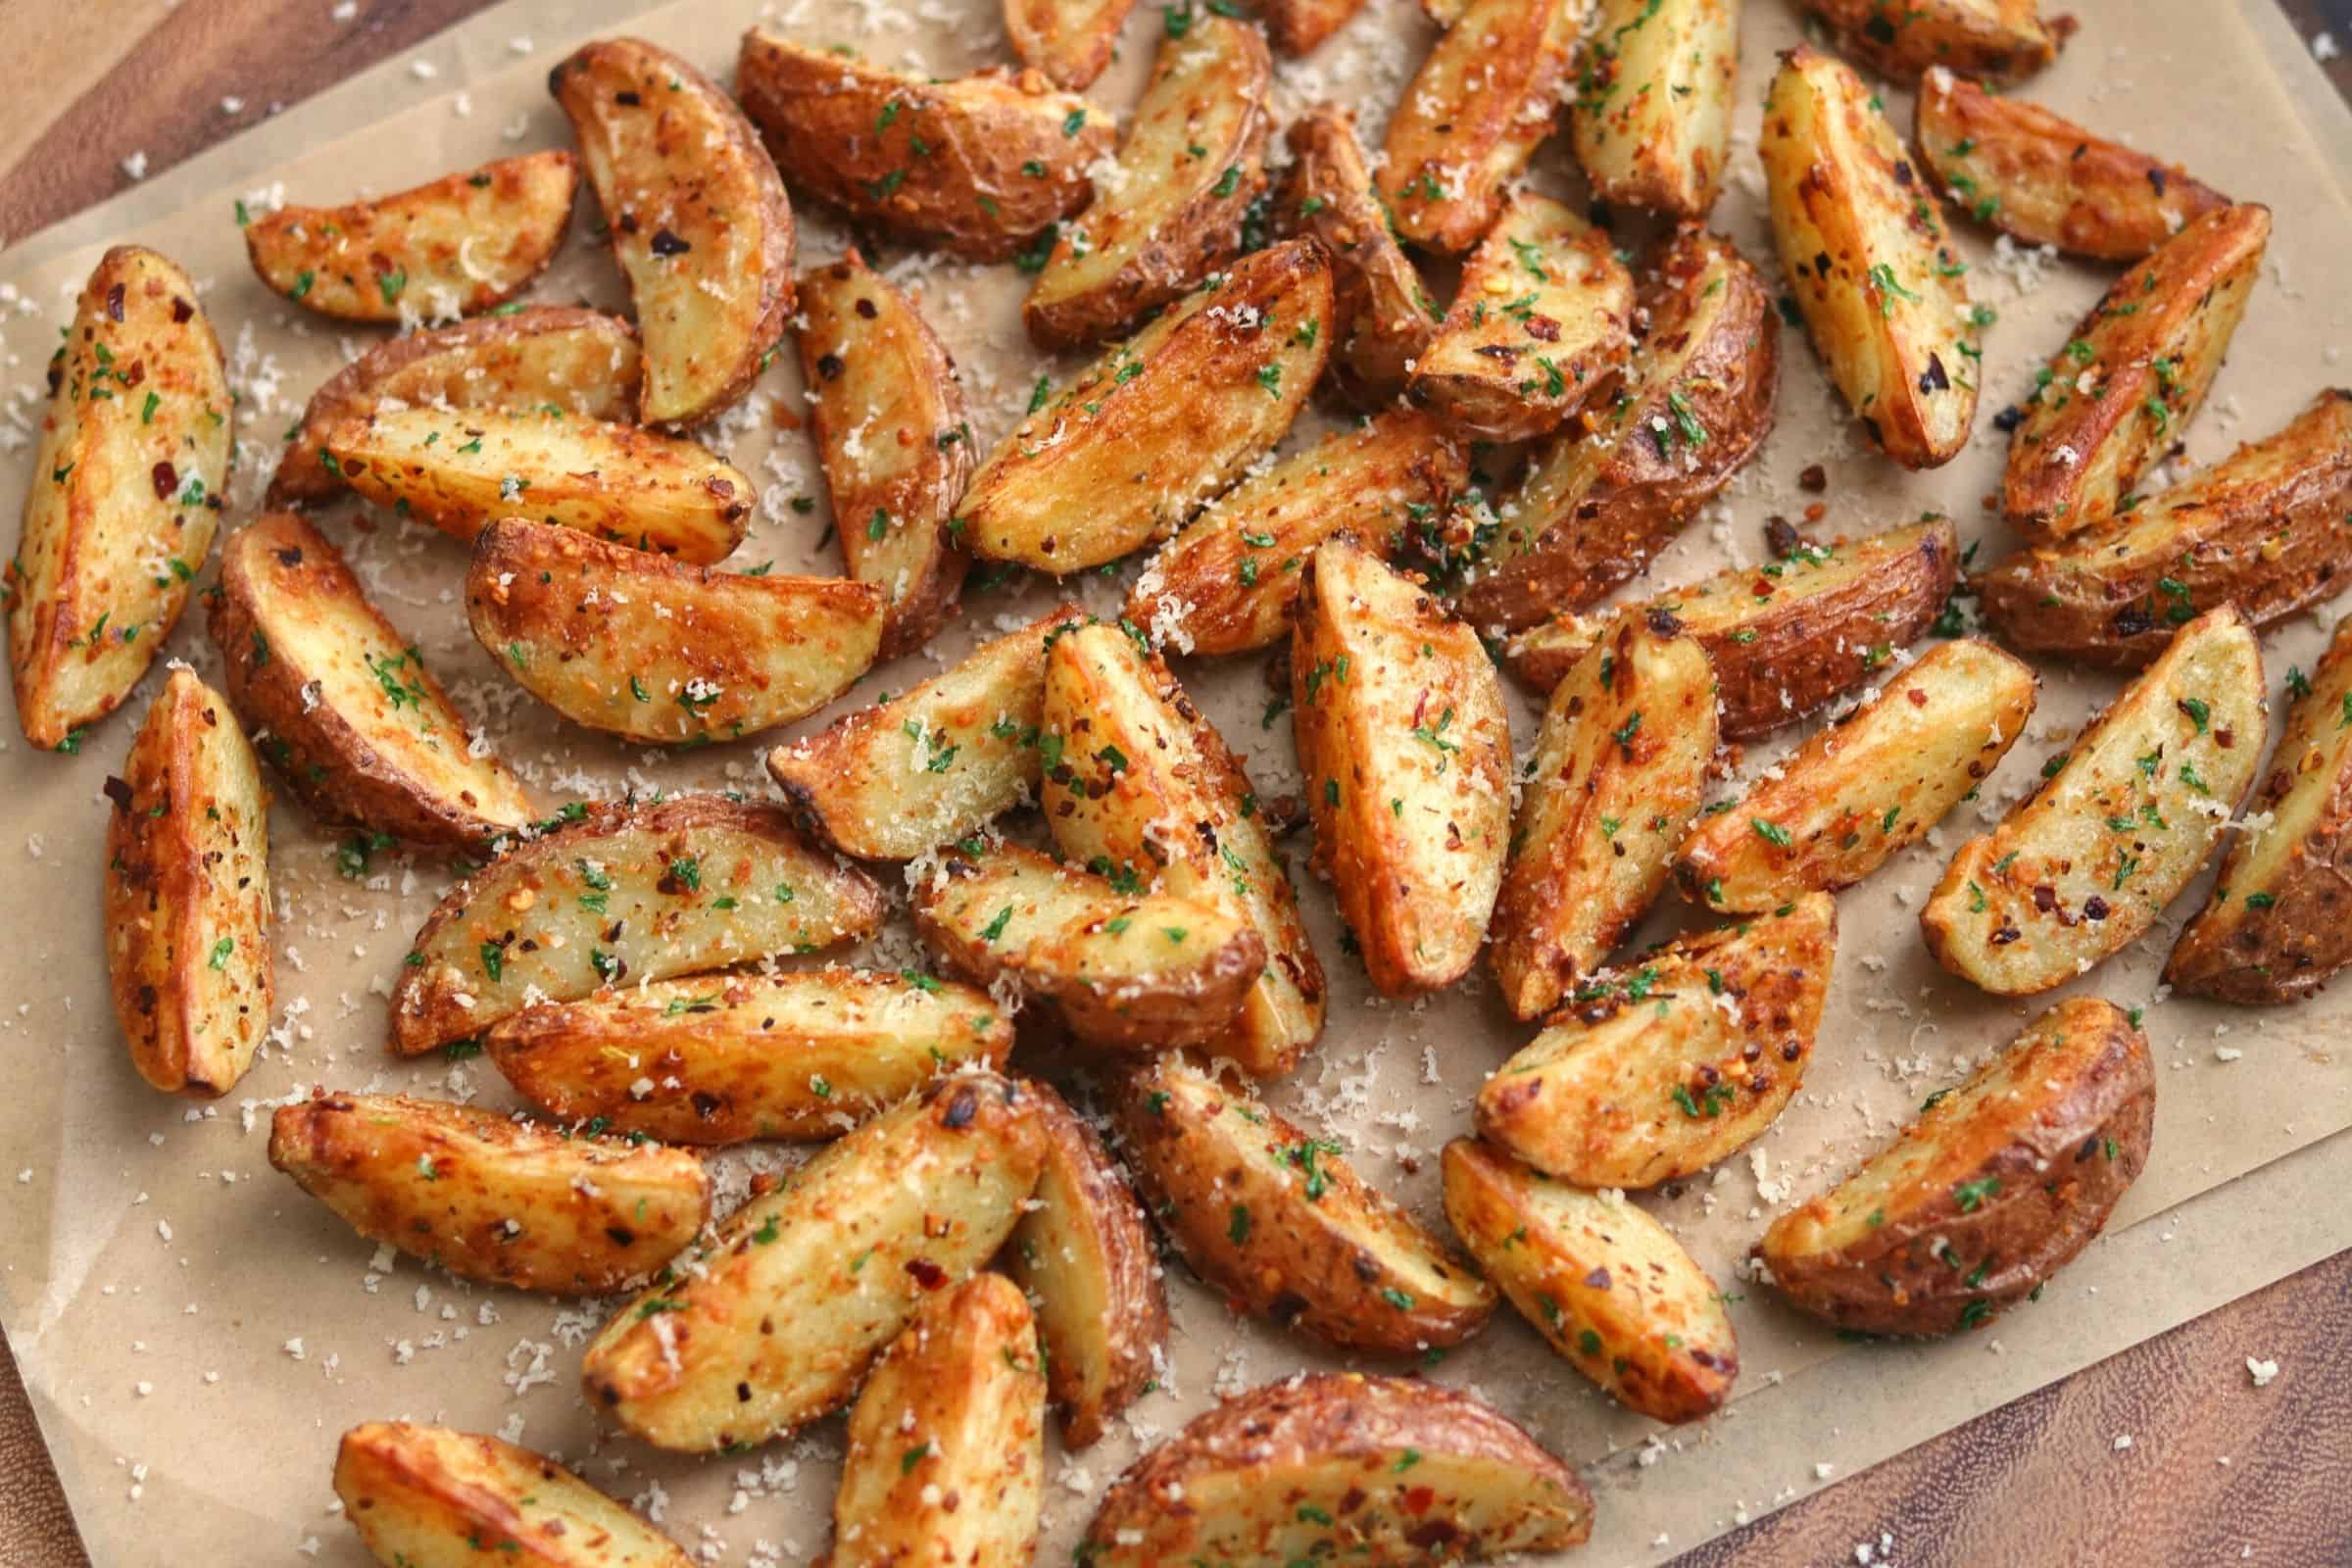 garlic parmesan air fryer red potatoes on parchment paper with grated parmesan and parsley flakes